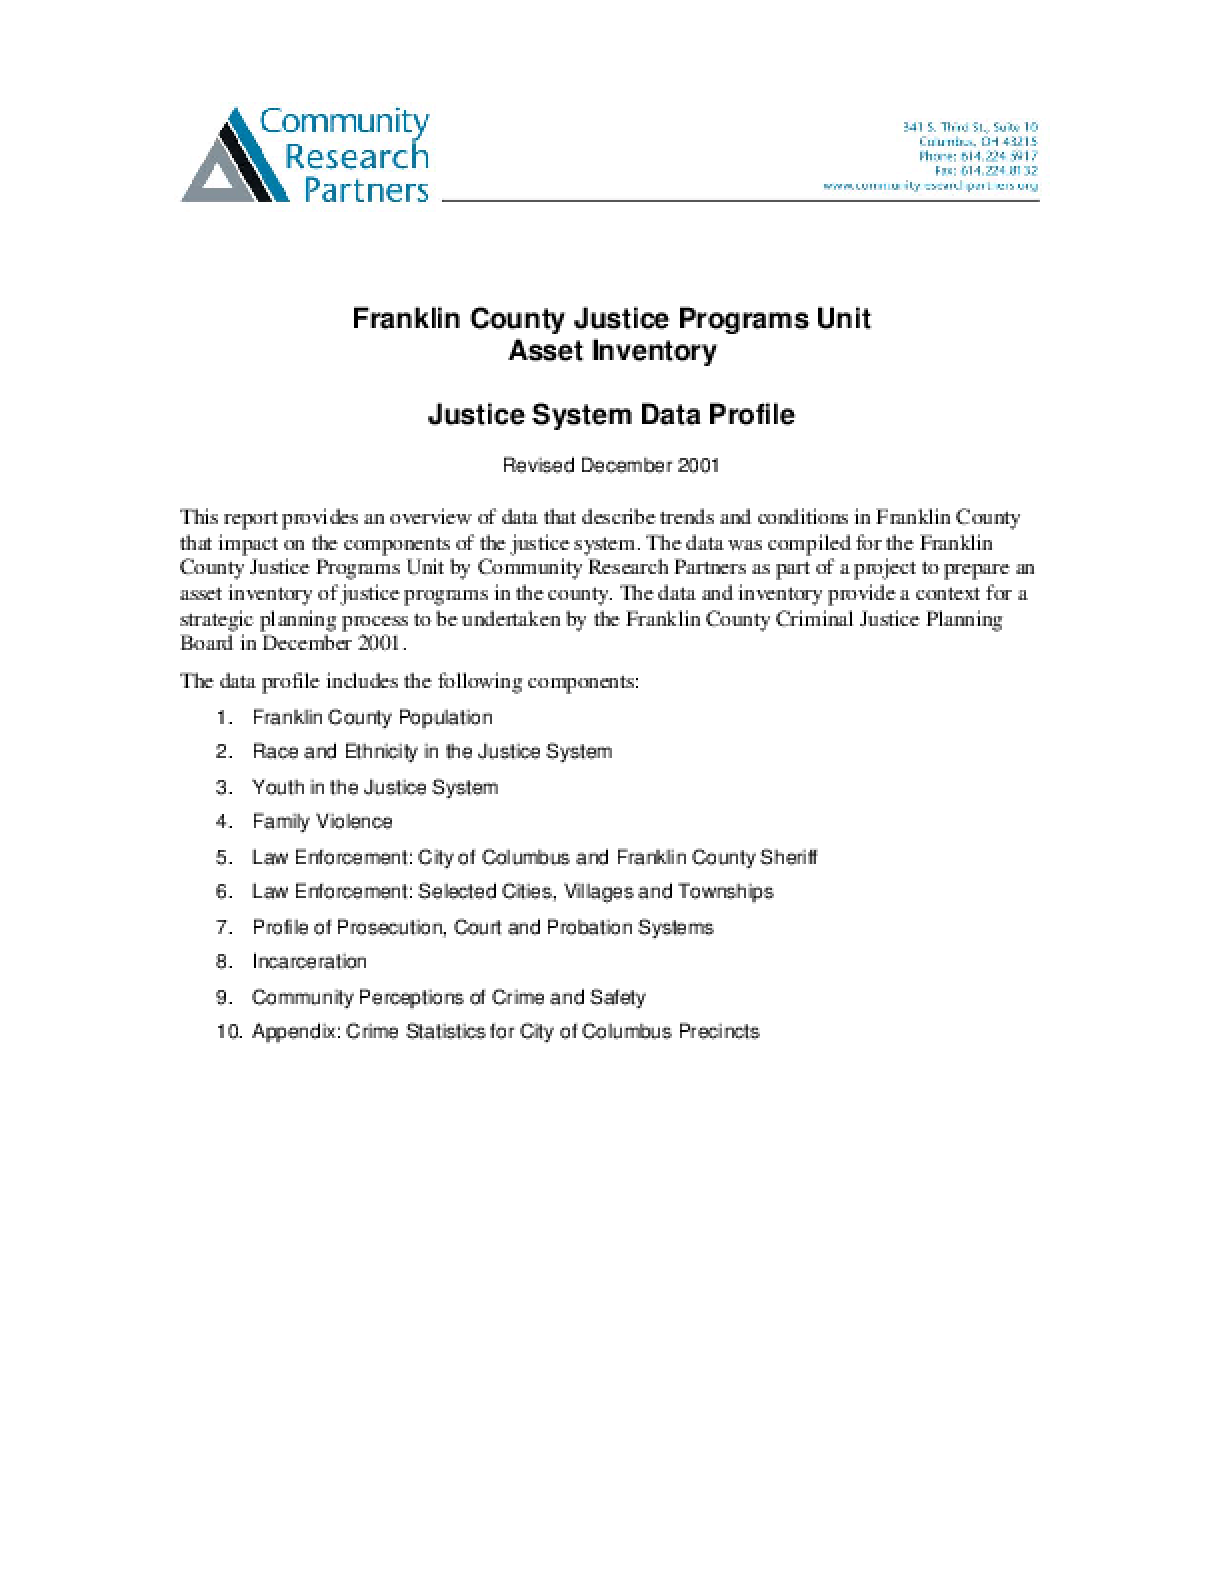 Franklin County Justice Programs Unit Asset Inventory: Justice System Data Profile